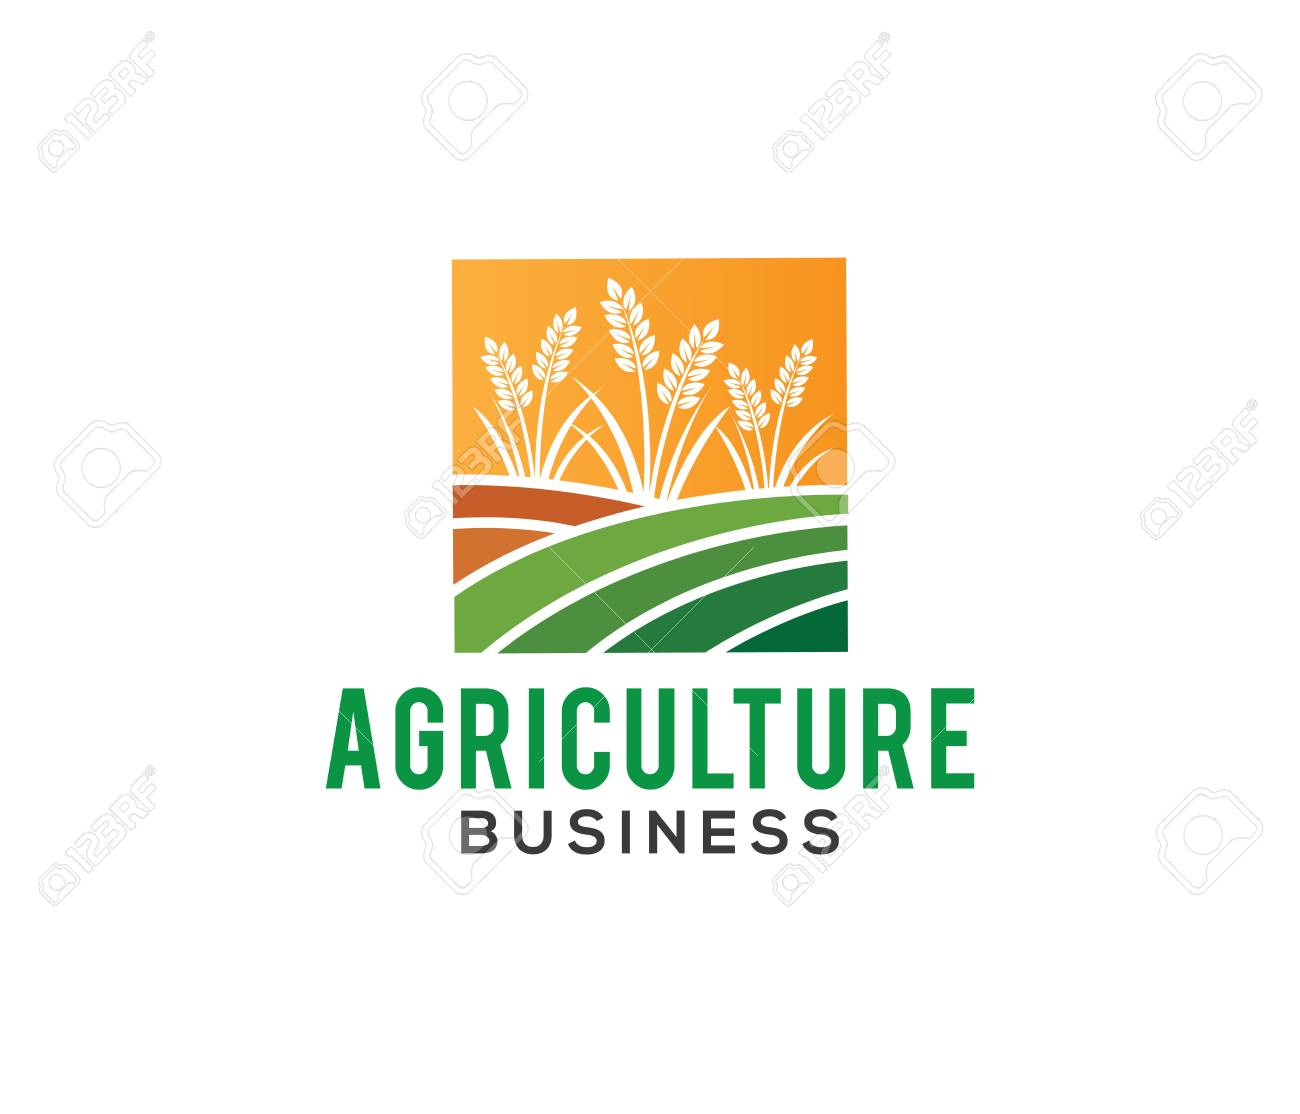 vector logo design and illustration of agriculture business,